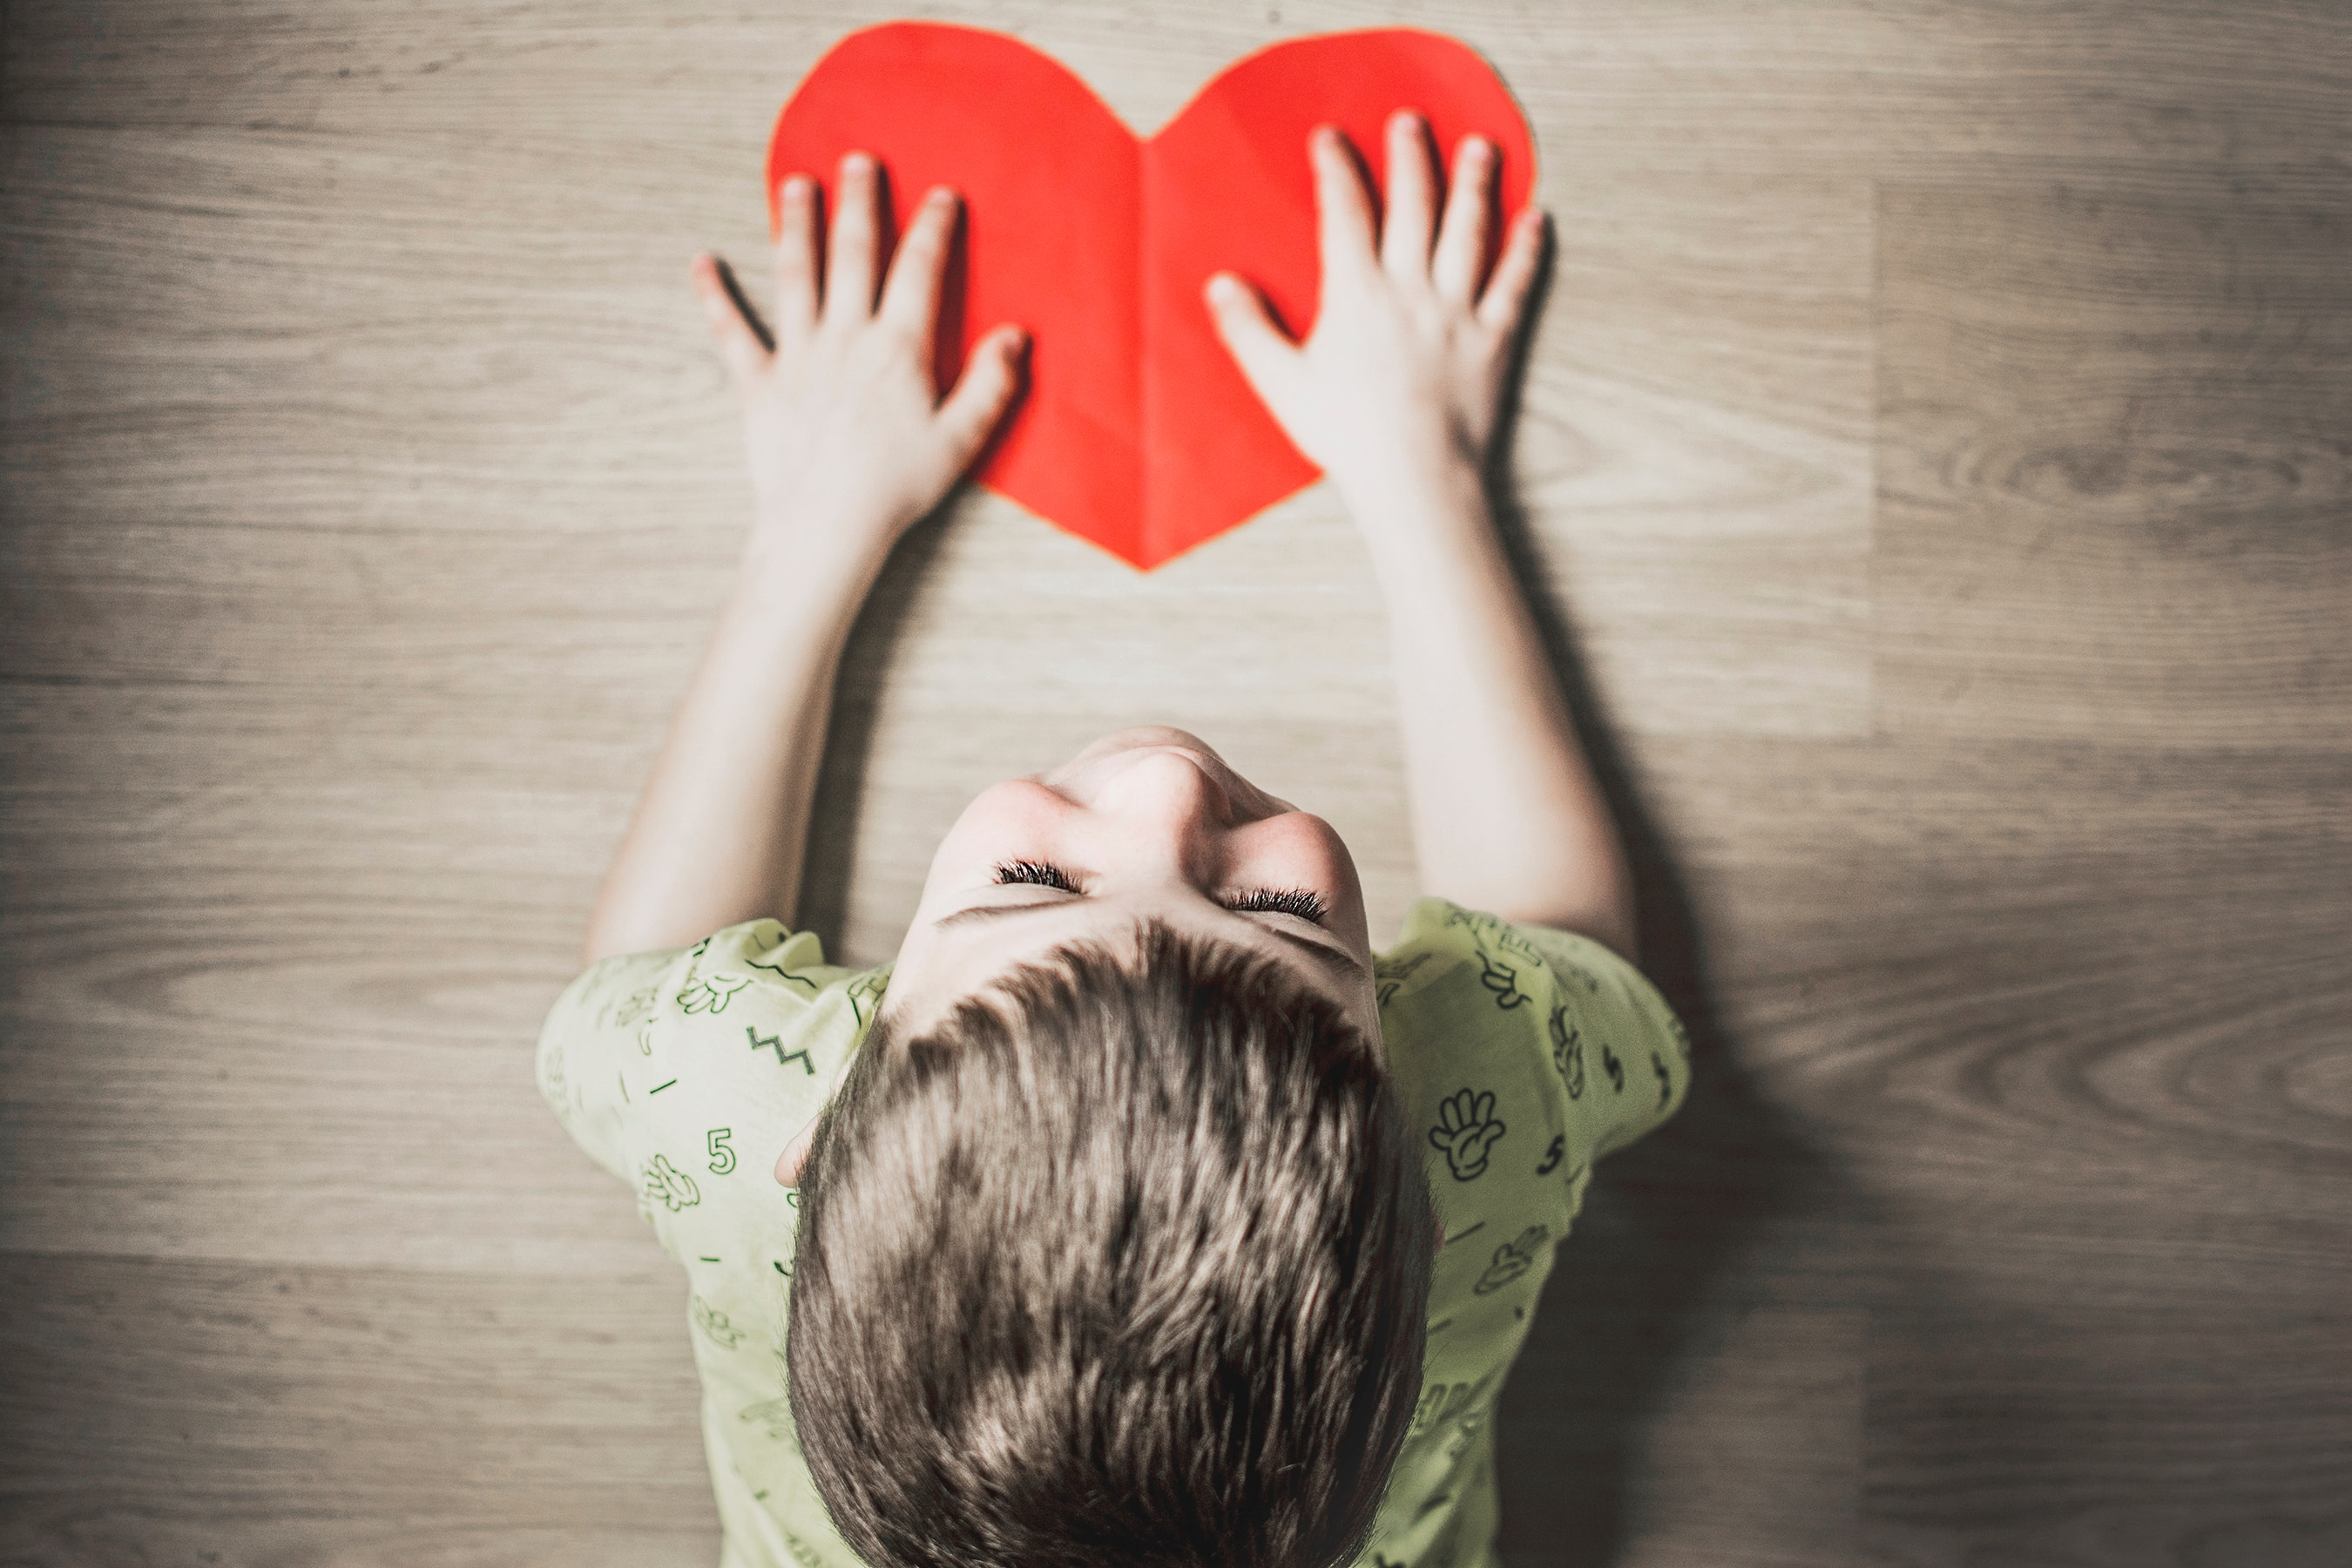 Demonstrating steadfast love in parenting   Focus on the